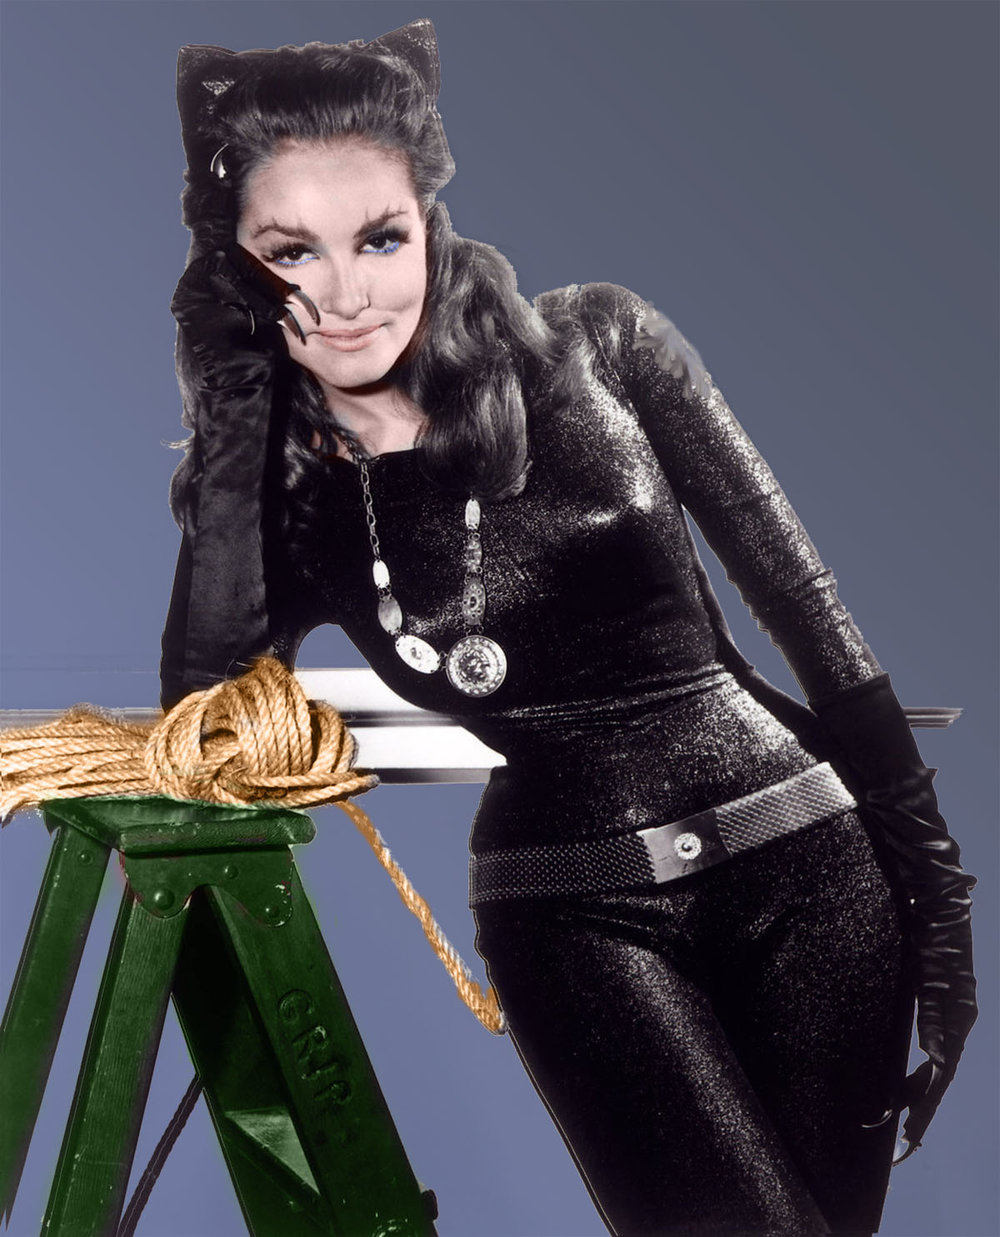 Julie Newmar as Catwoman on Batman